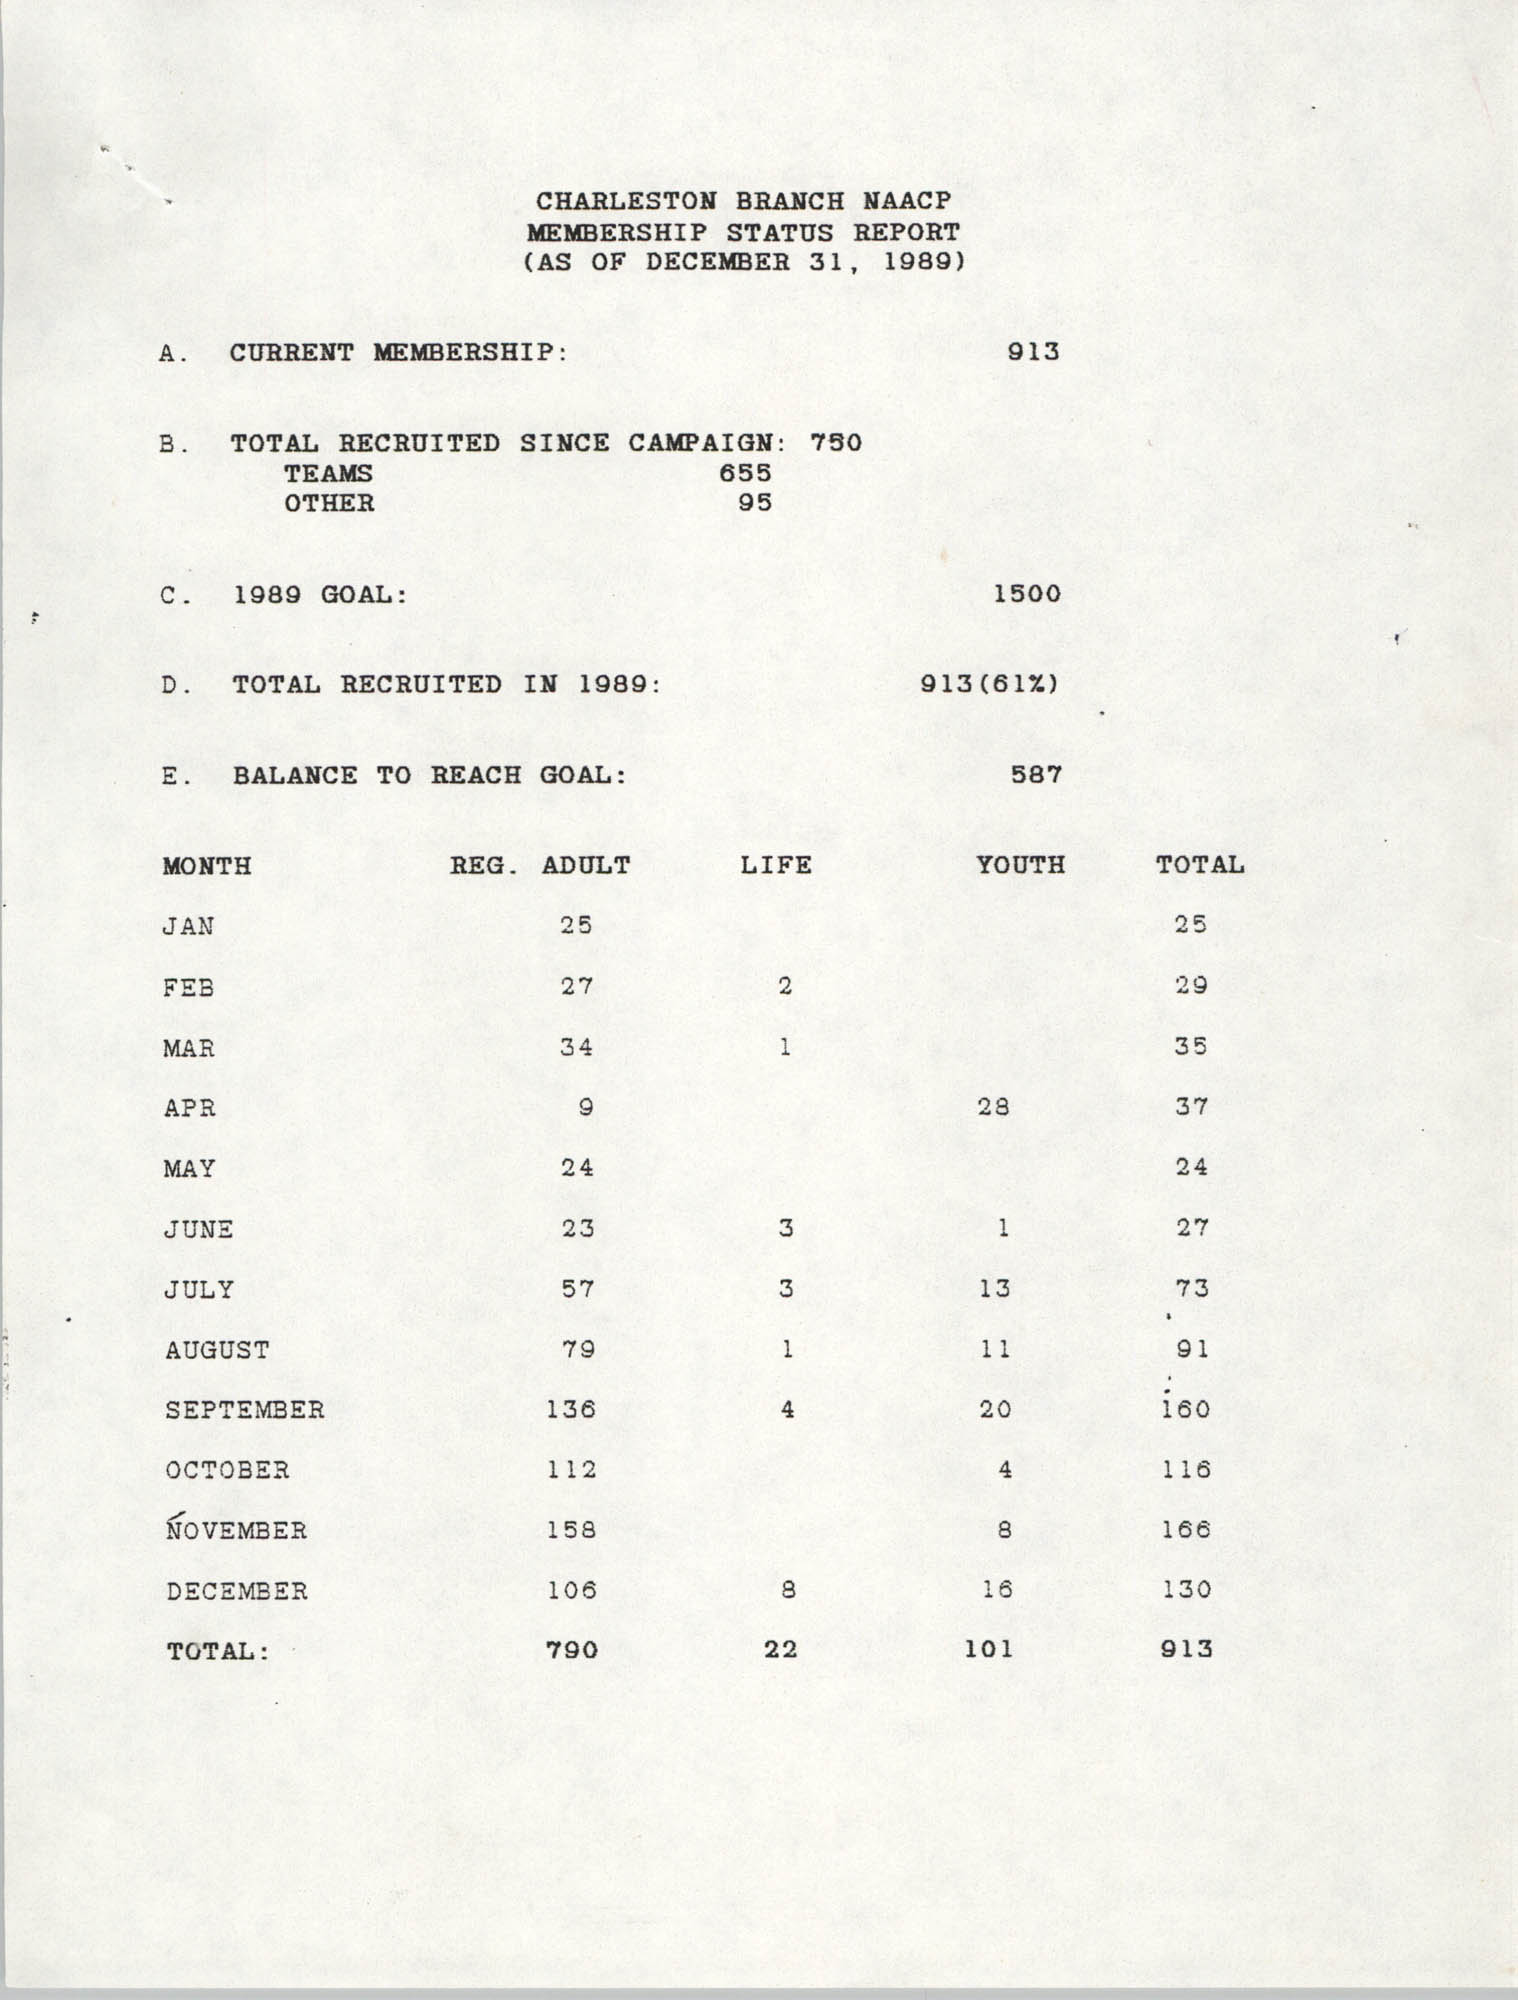 Membership Status Report, National Association for the Advancement of Colored People, December 31, 1989